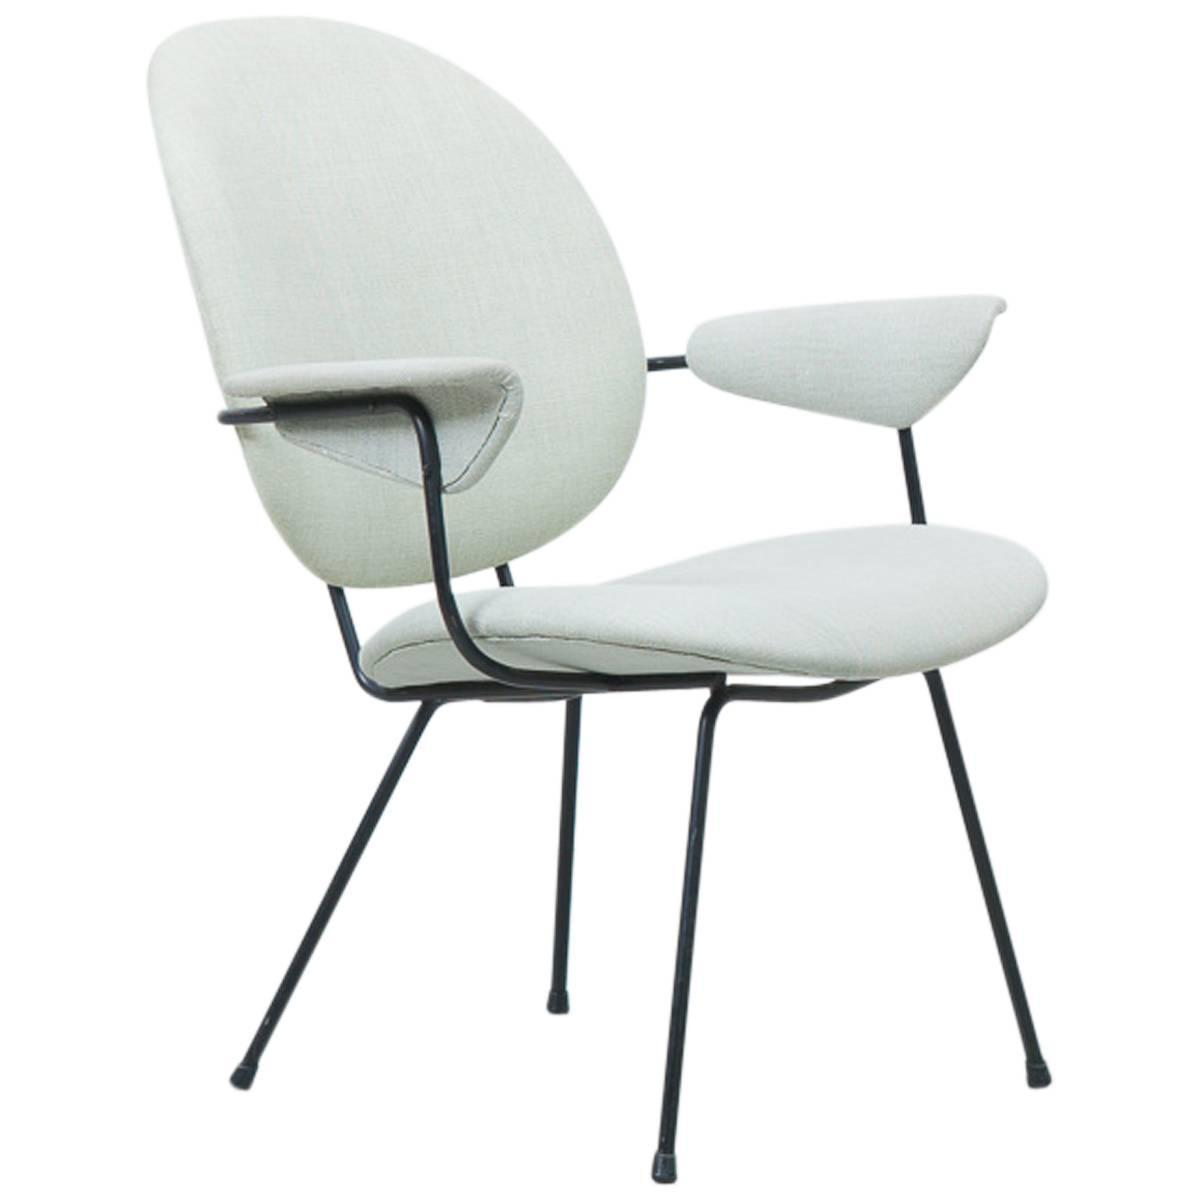 Oval lounge chair - Oval Lounge Chair 6